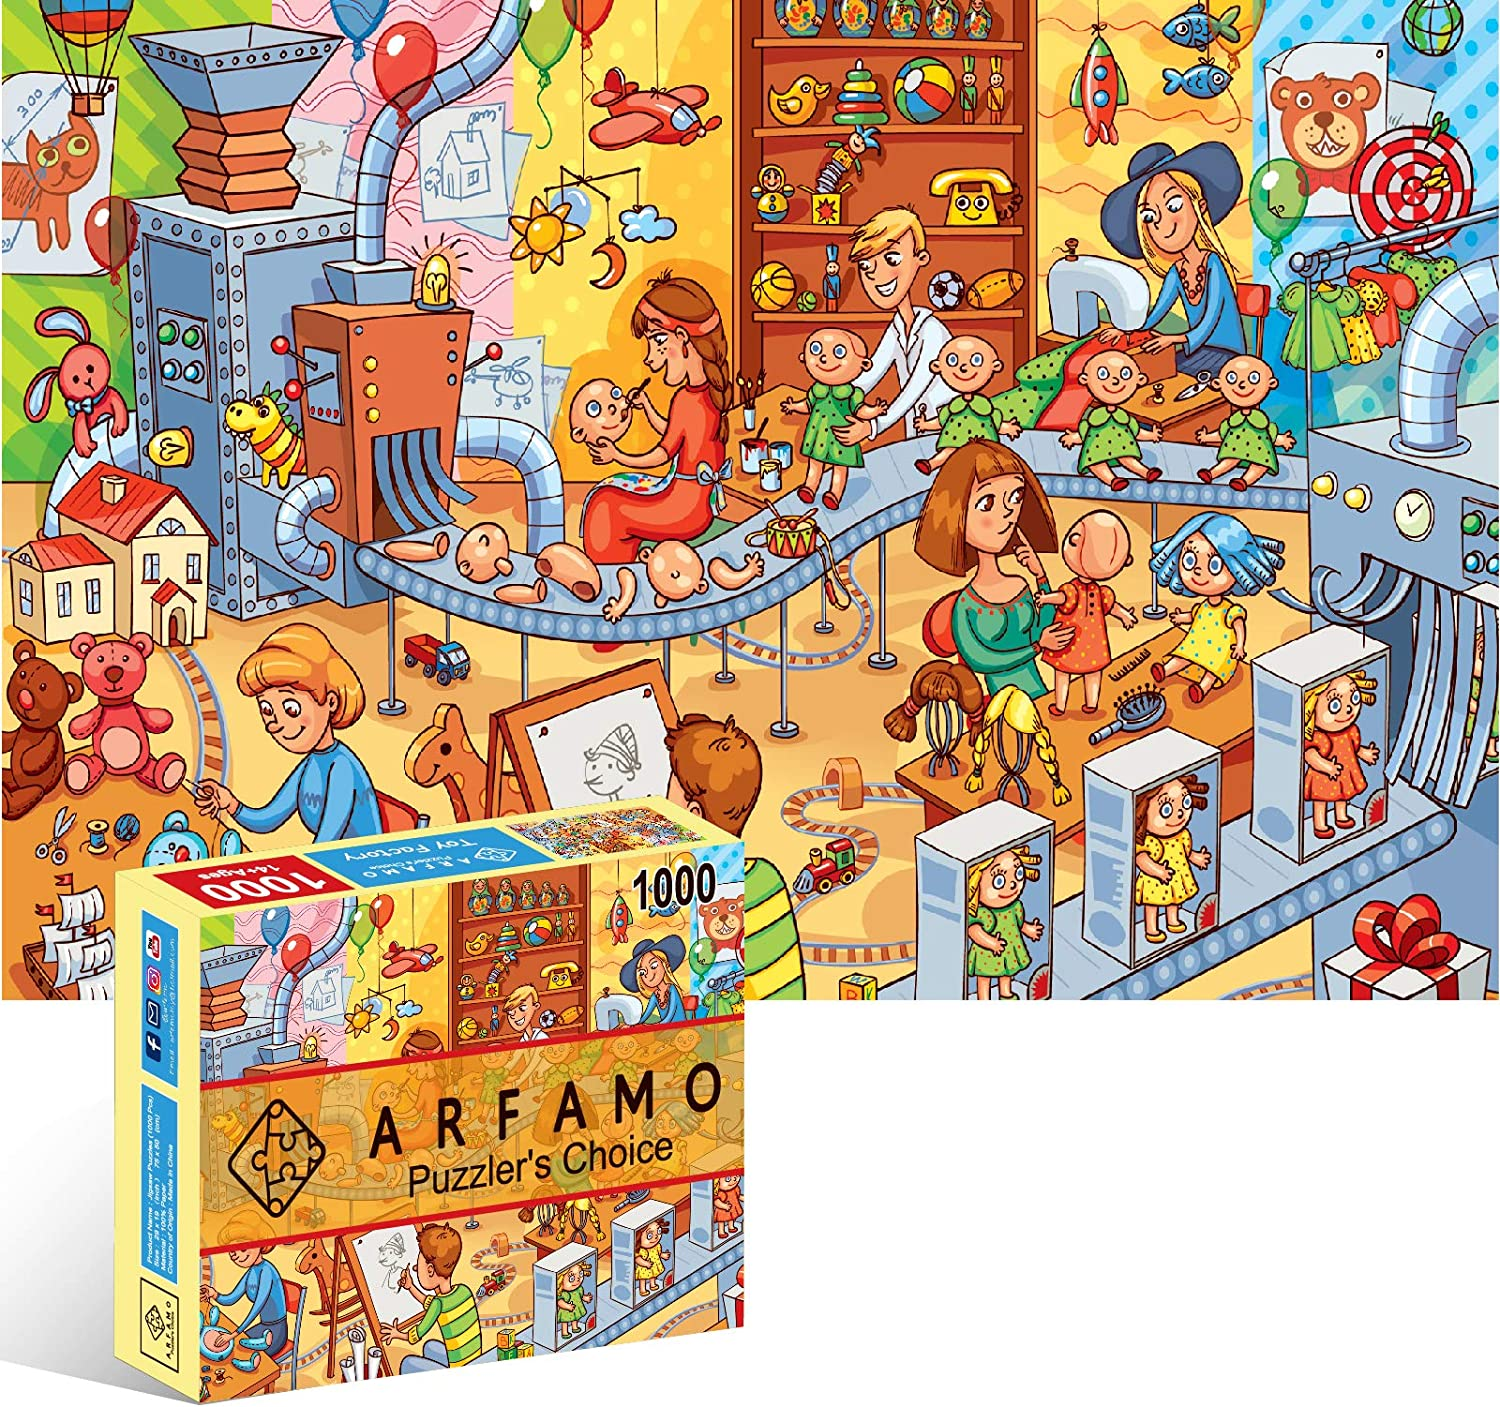 Arfamo Puzzles for Adults 1000 Piece Jigsaw Puzzles Challenging 1000 Piece Puzzle Educational Family Game DIY Mural Toys Gift for Adults Kids Teens Jigsaw Puzzles Fish Tank cat